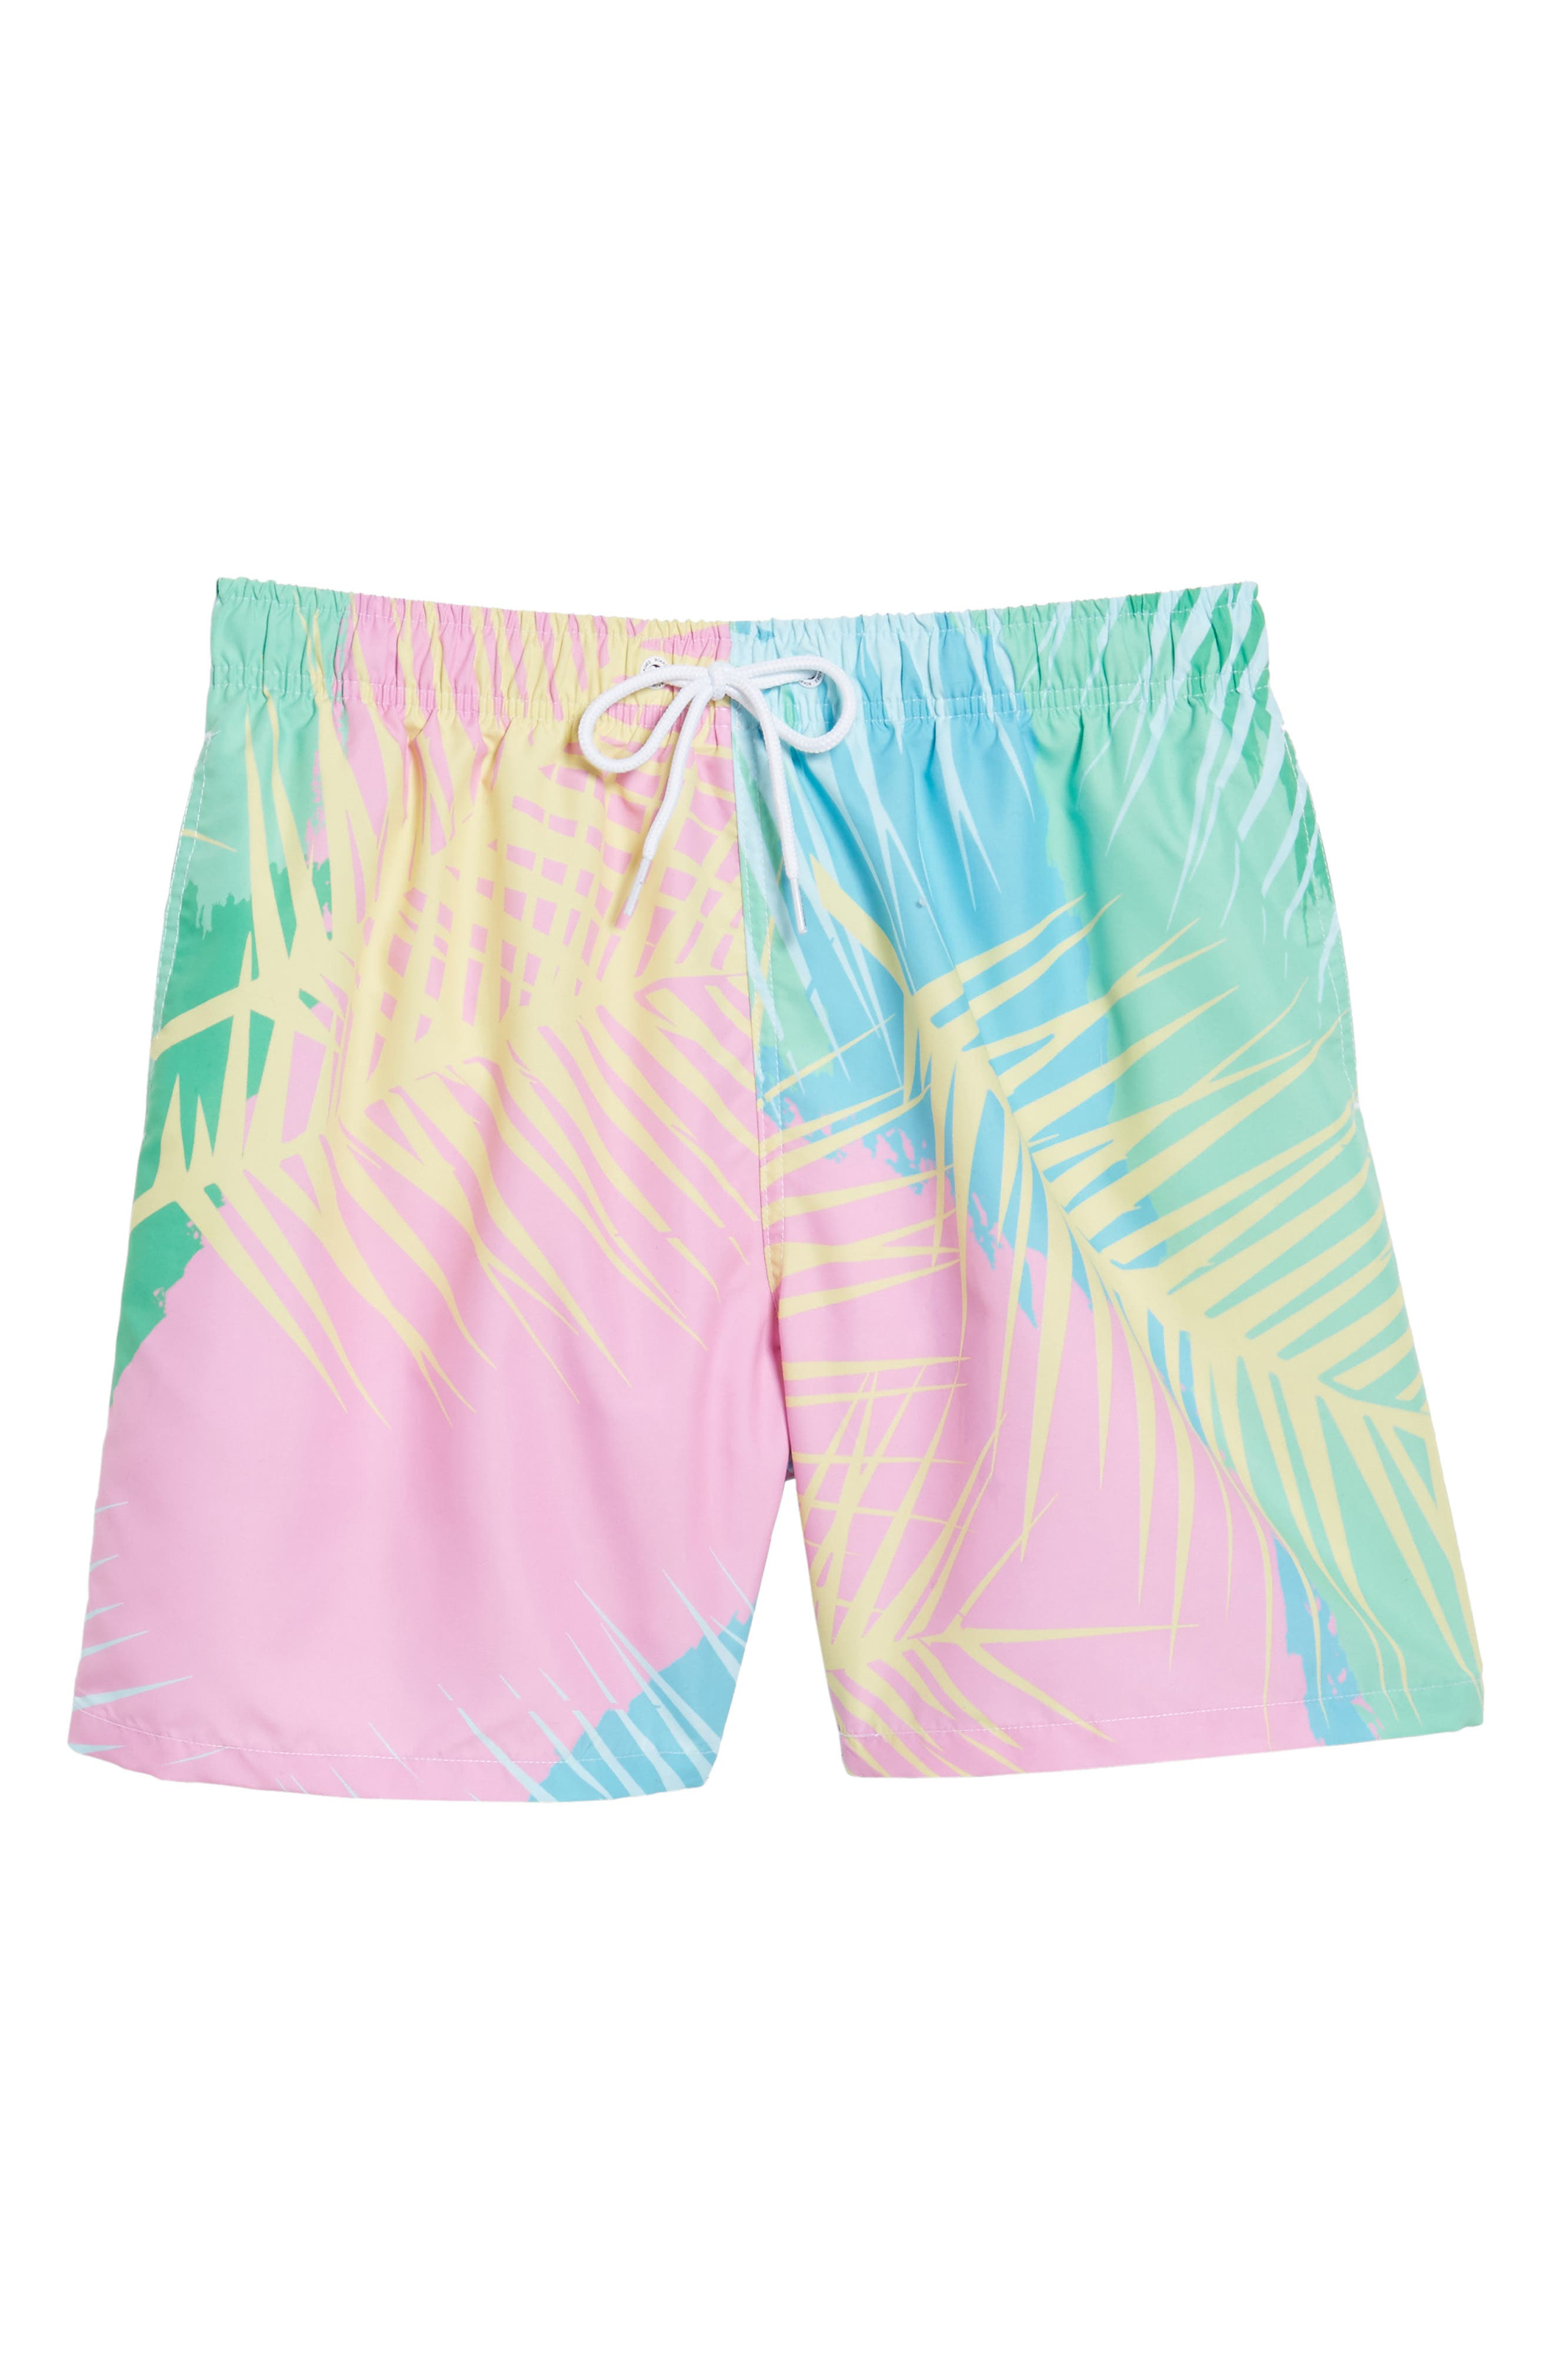 Tropicano Swim Trunks,                             Alternate thumbnail 6, color,                             650